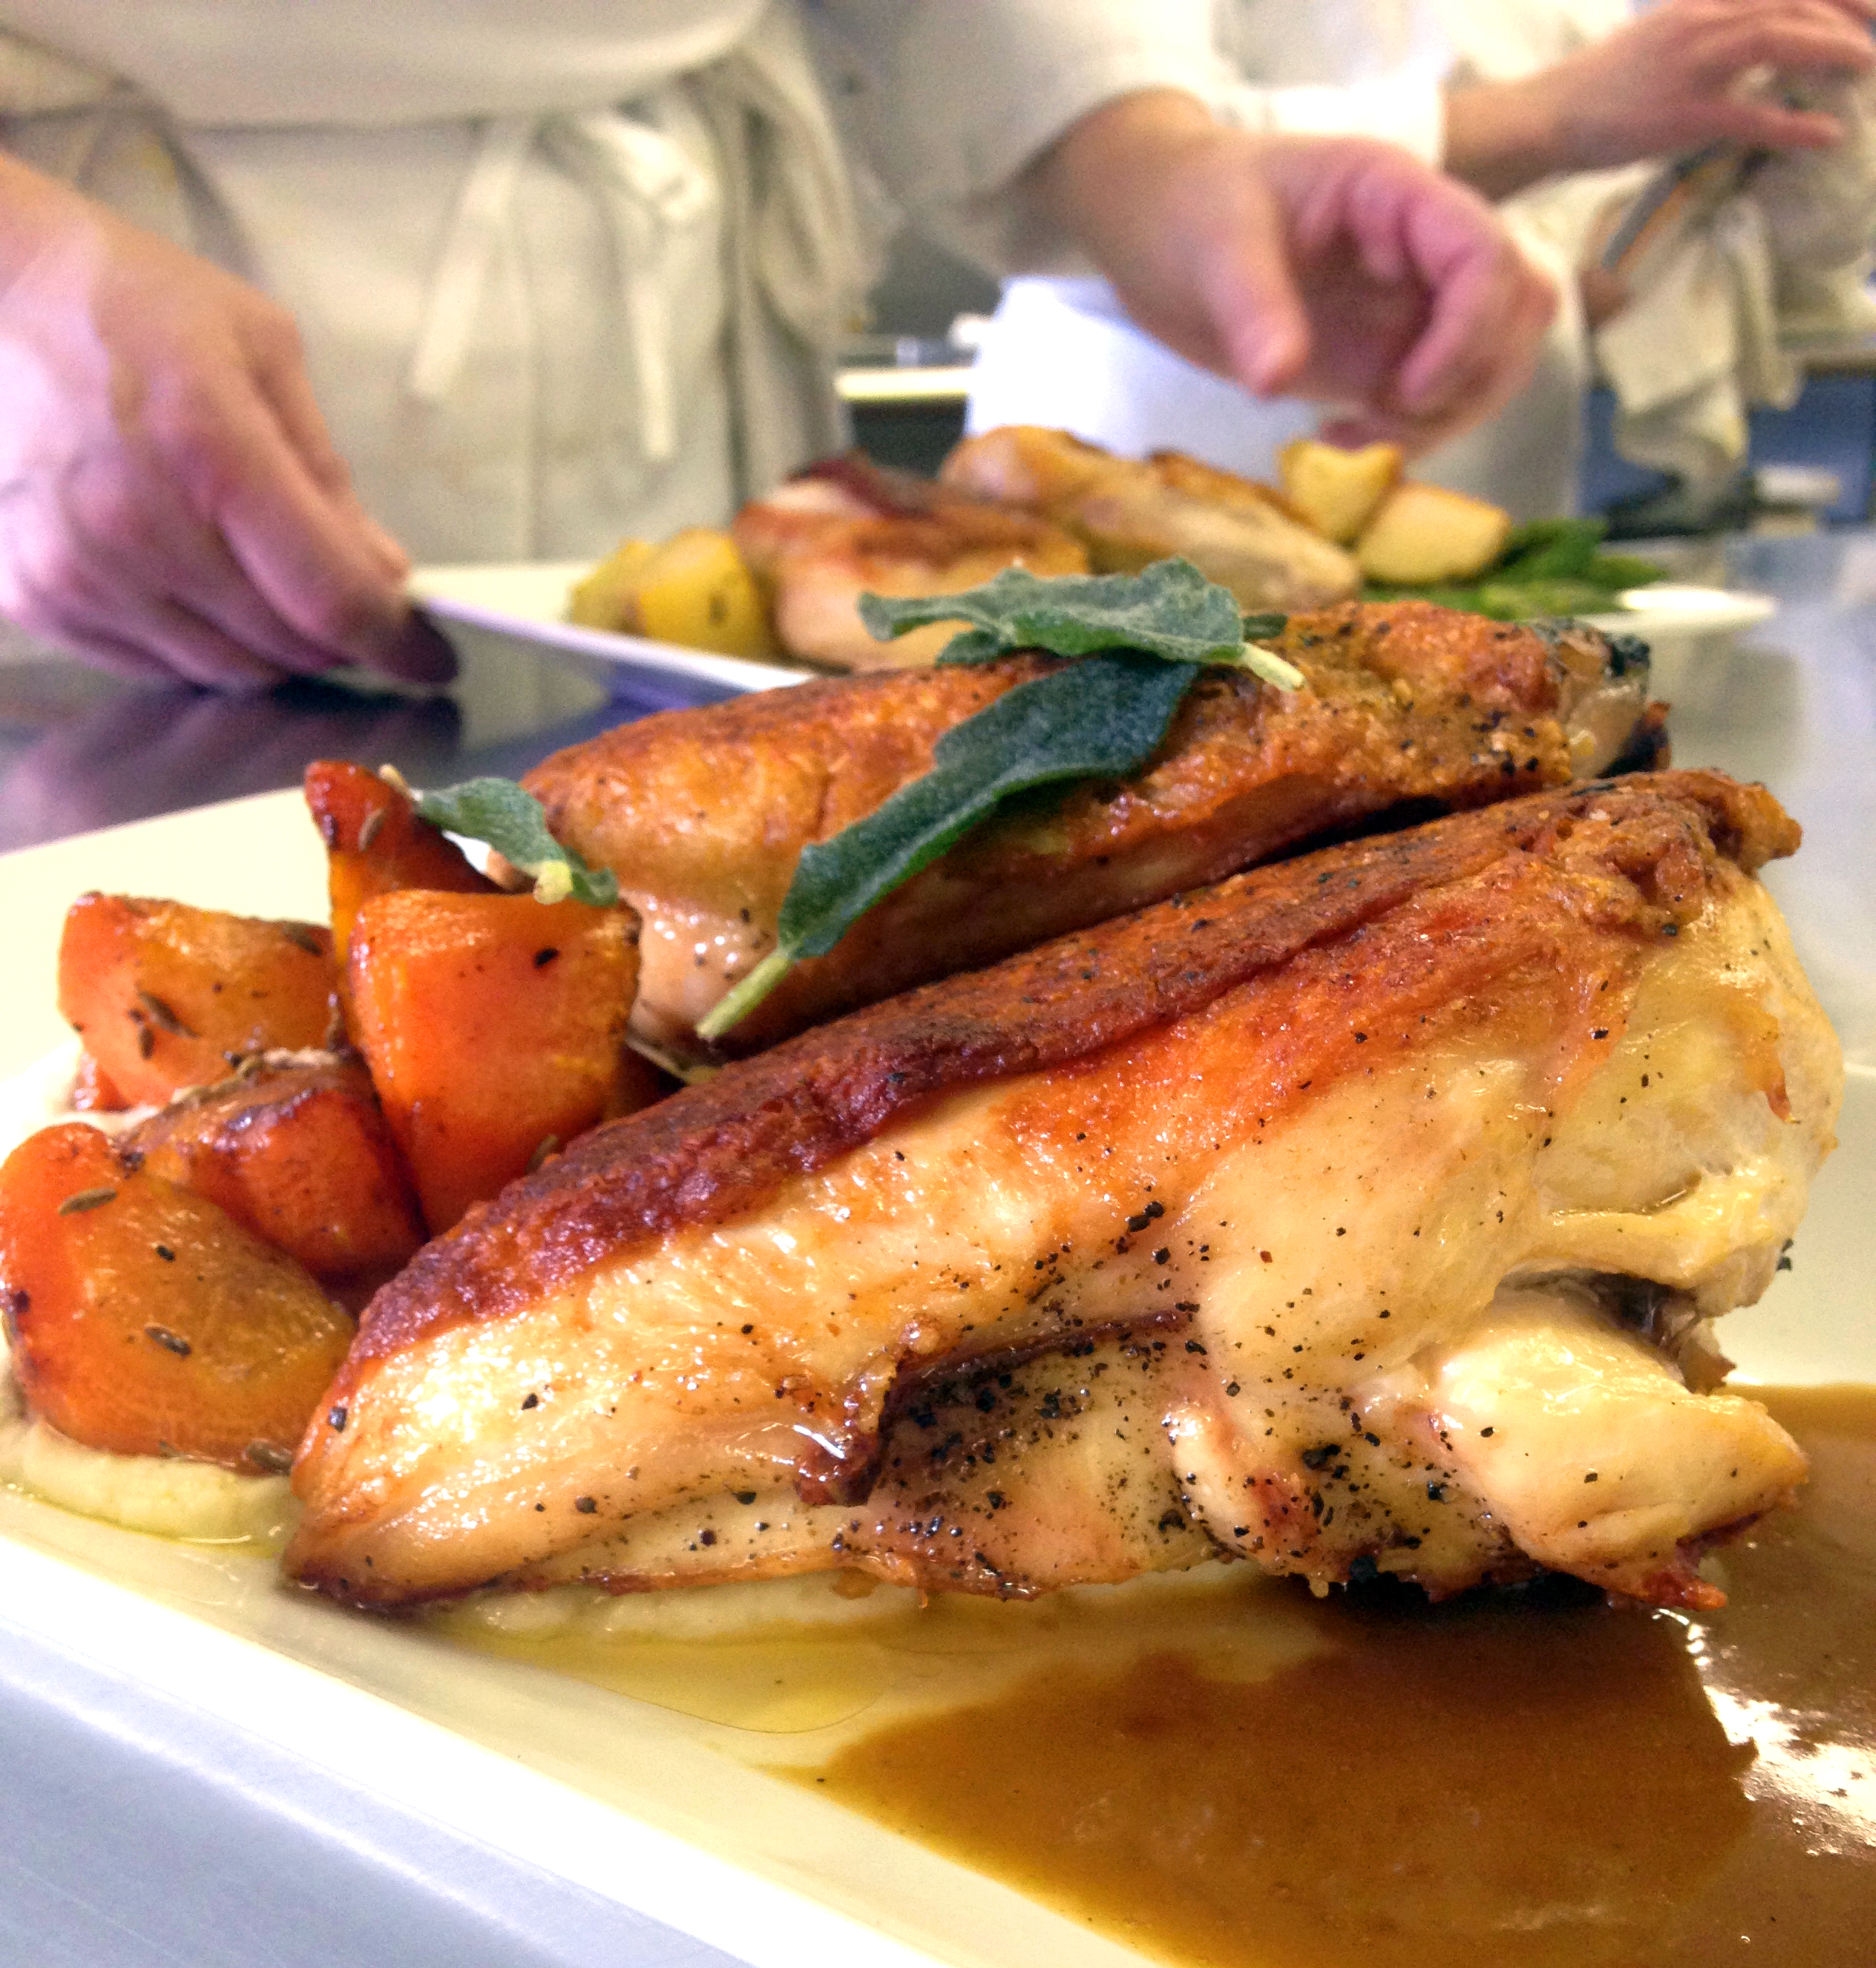 Not the best angle, but here's my pan-roasted chicken with jus, parsnip puree, and roasted carrots